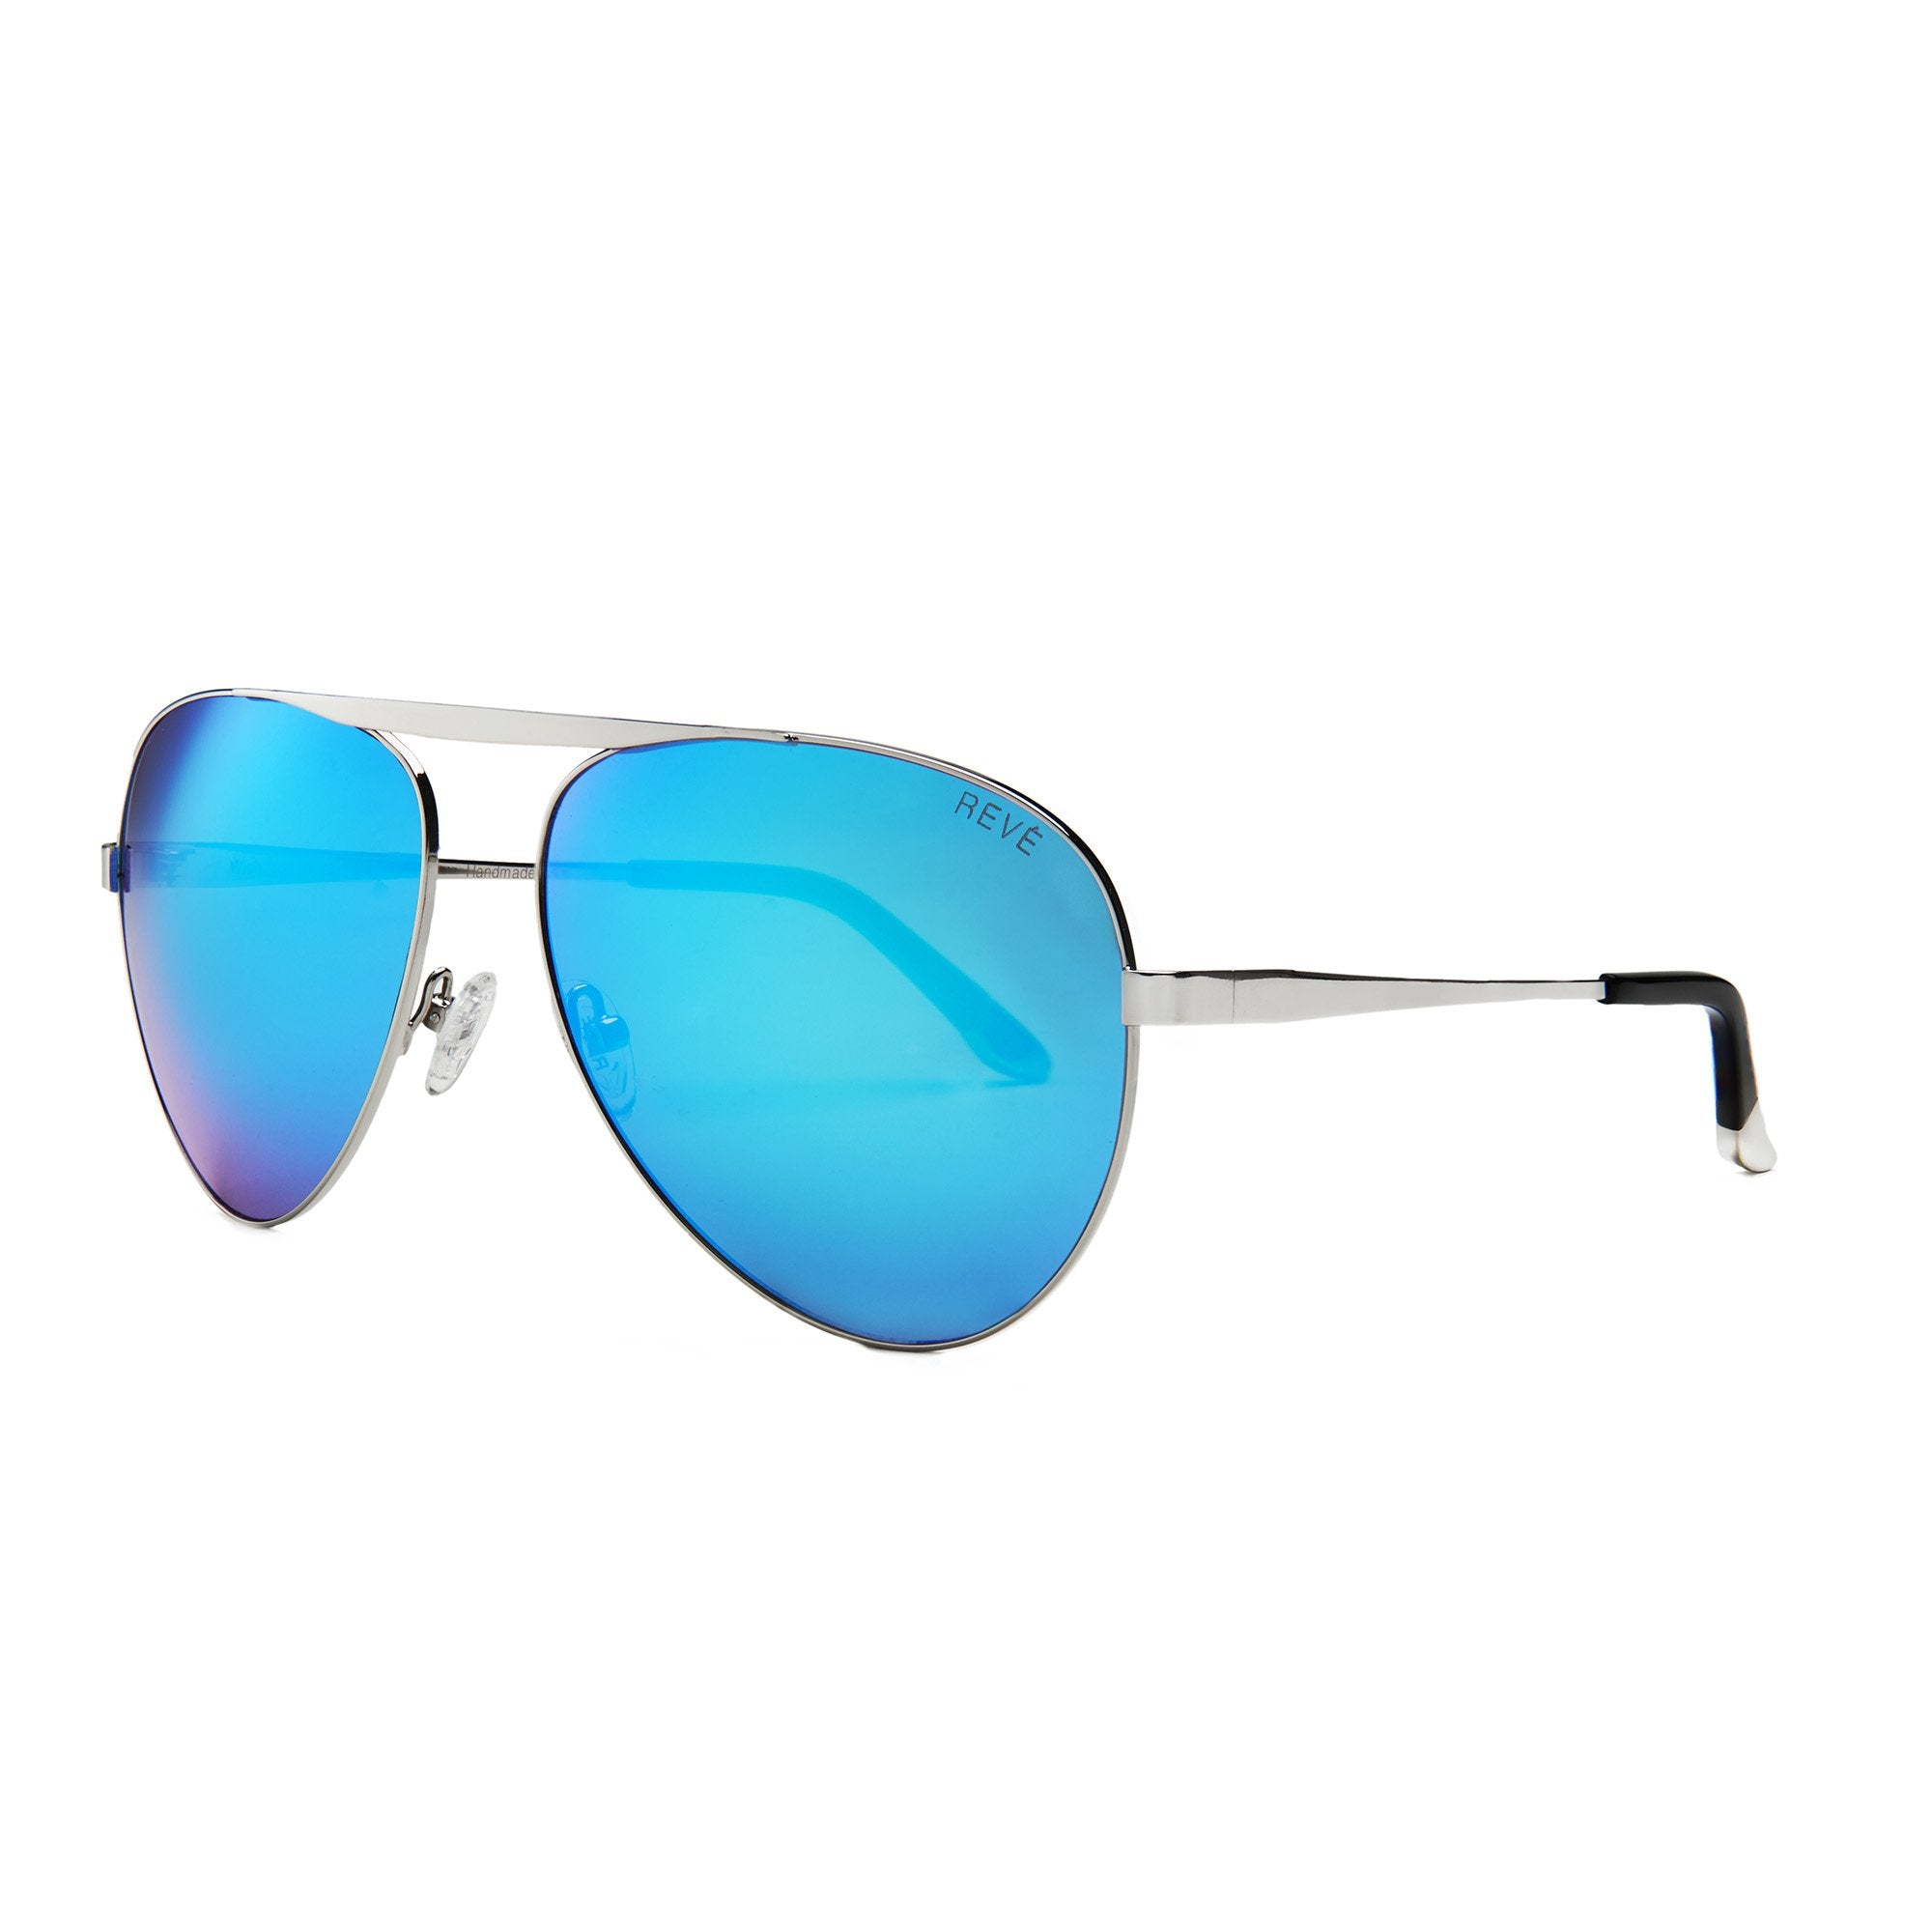 REVE by RENE wish you were here aviator sunglasses sur blue